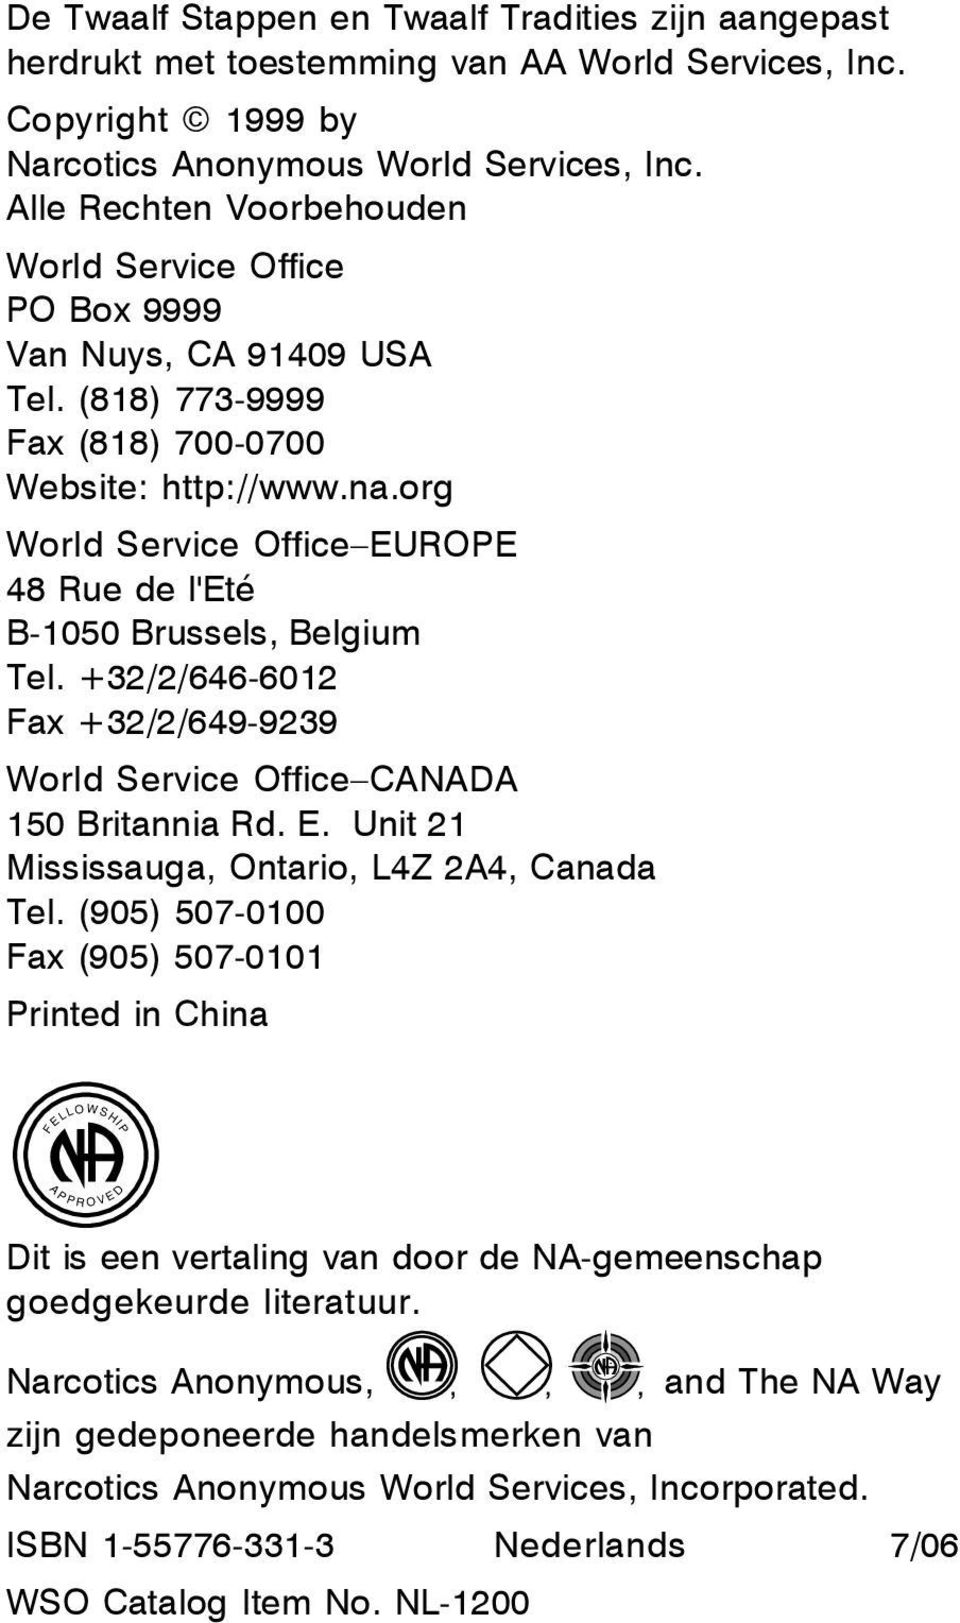 org World Service Office EUROPE 48 Rue de l'eté B-1050 Brussels, Belgium Tel. +32/2/646-6012 Fax +32/2/649-9239 World Service Office CANADA 150 Britannia Rd. E. Unit 21 Mississauga, Ontario, L4Z 2A4, Canada Tel.